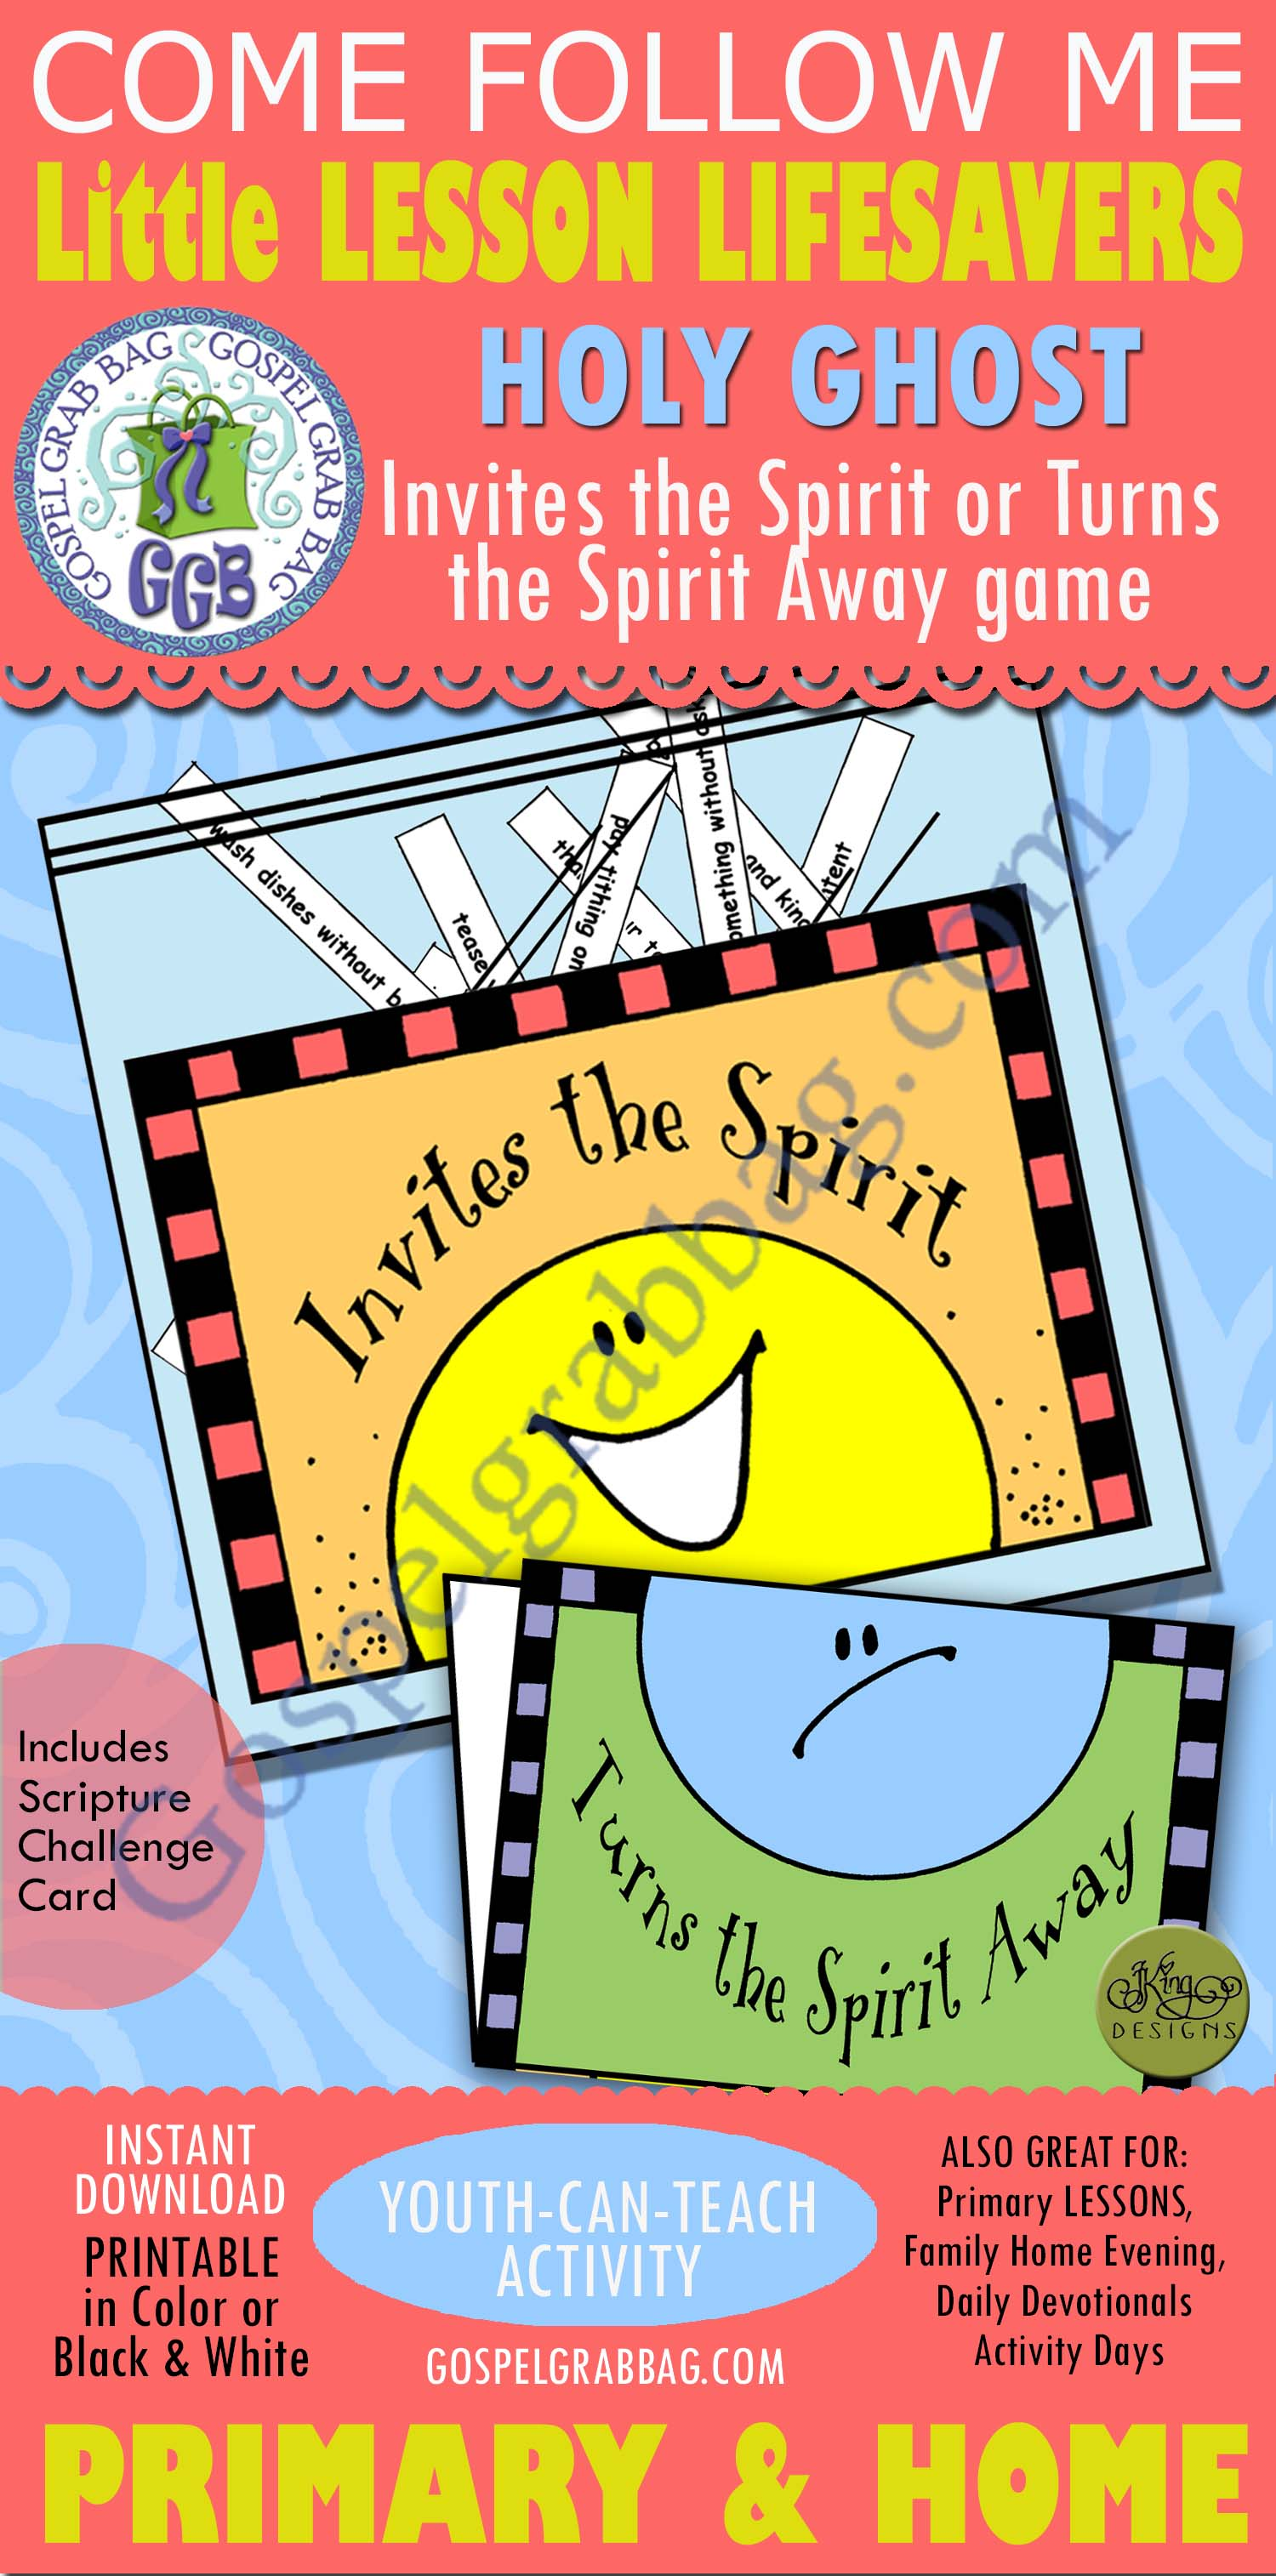 Holy Ghost Book Of Mormon Activity Invite The Spirit Game For